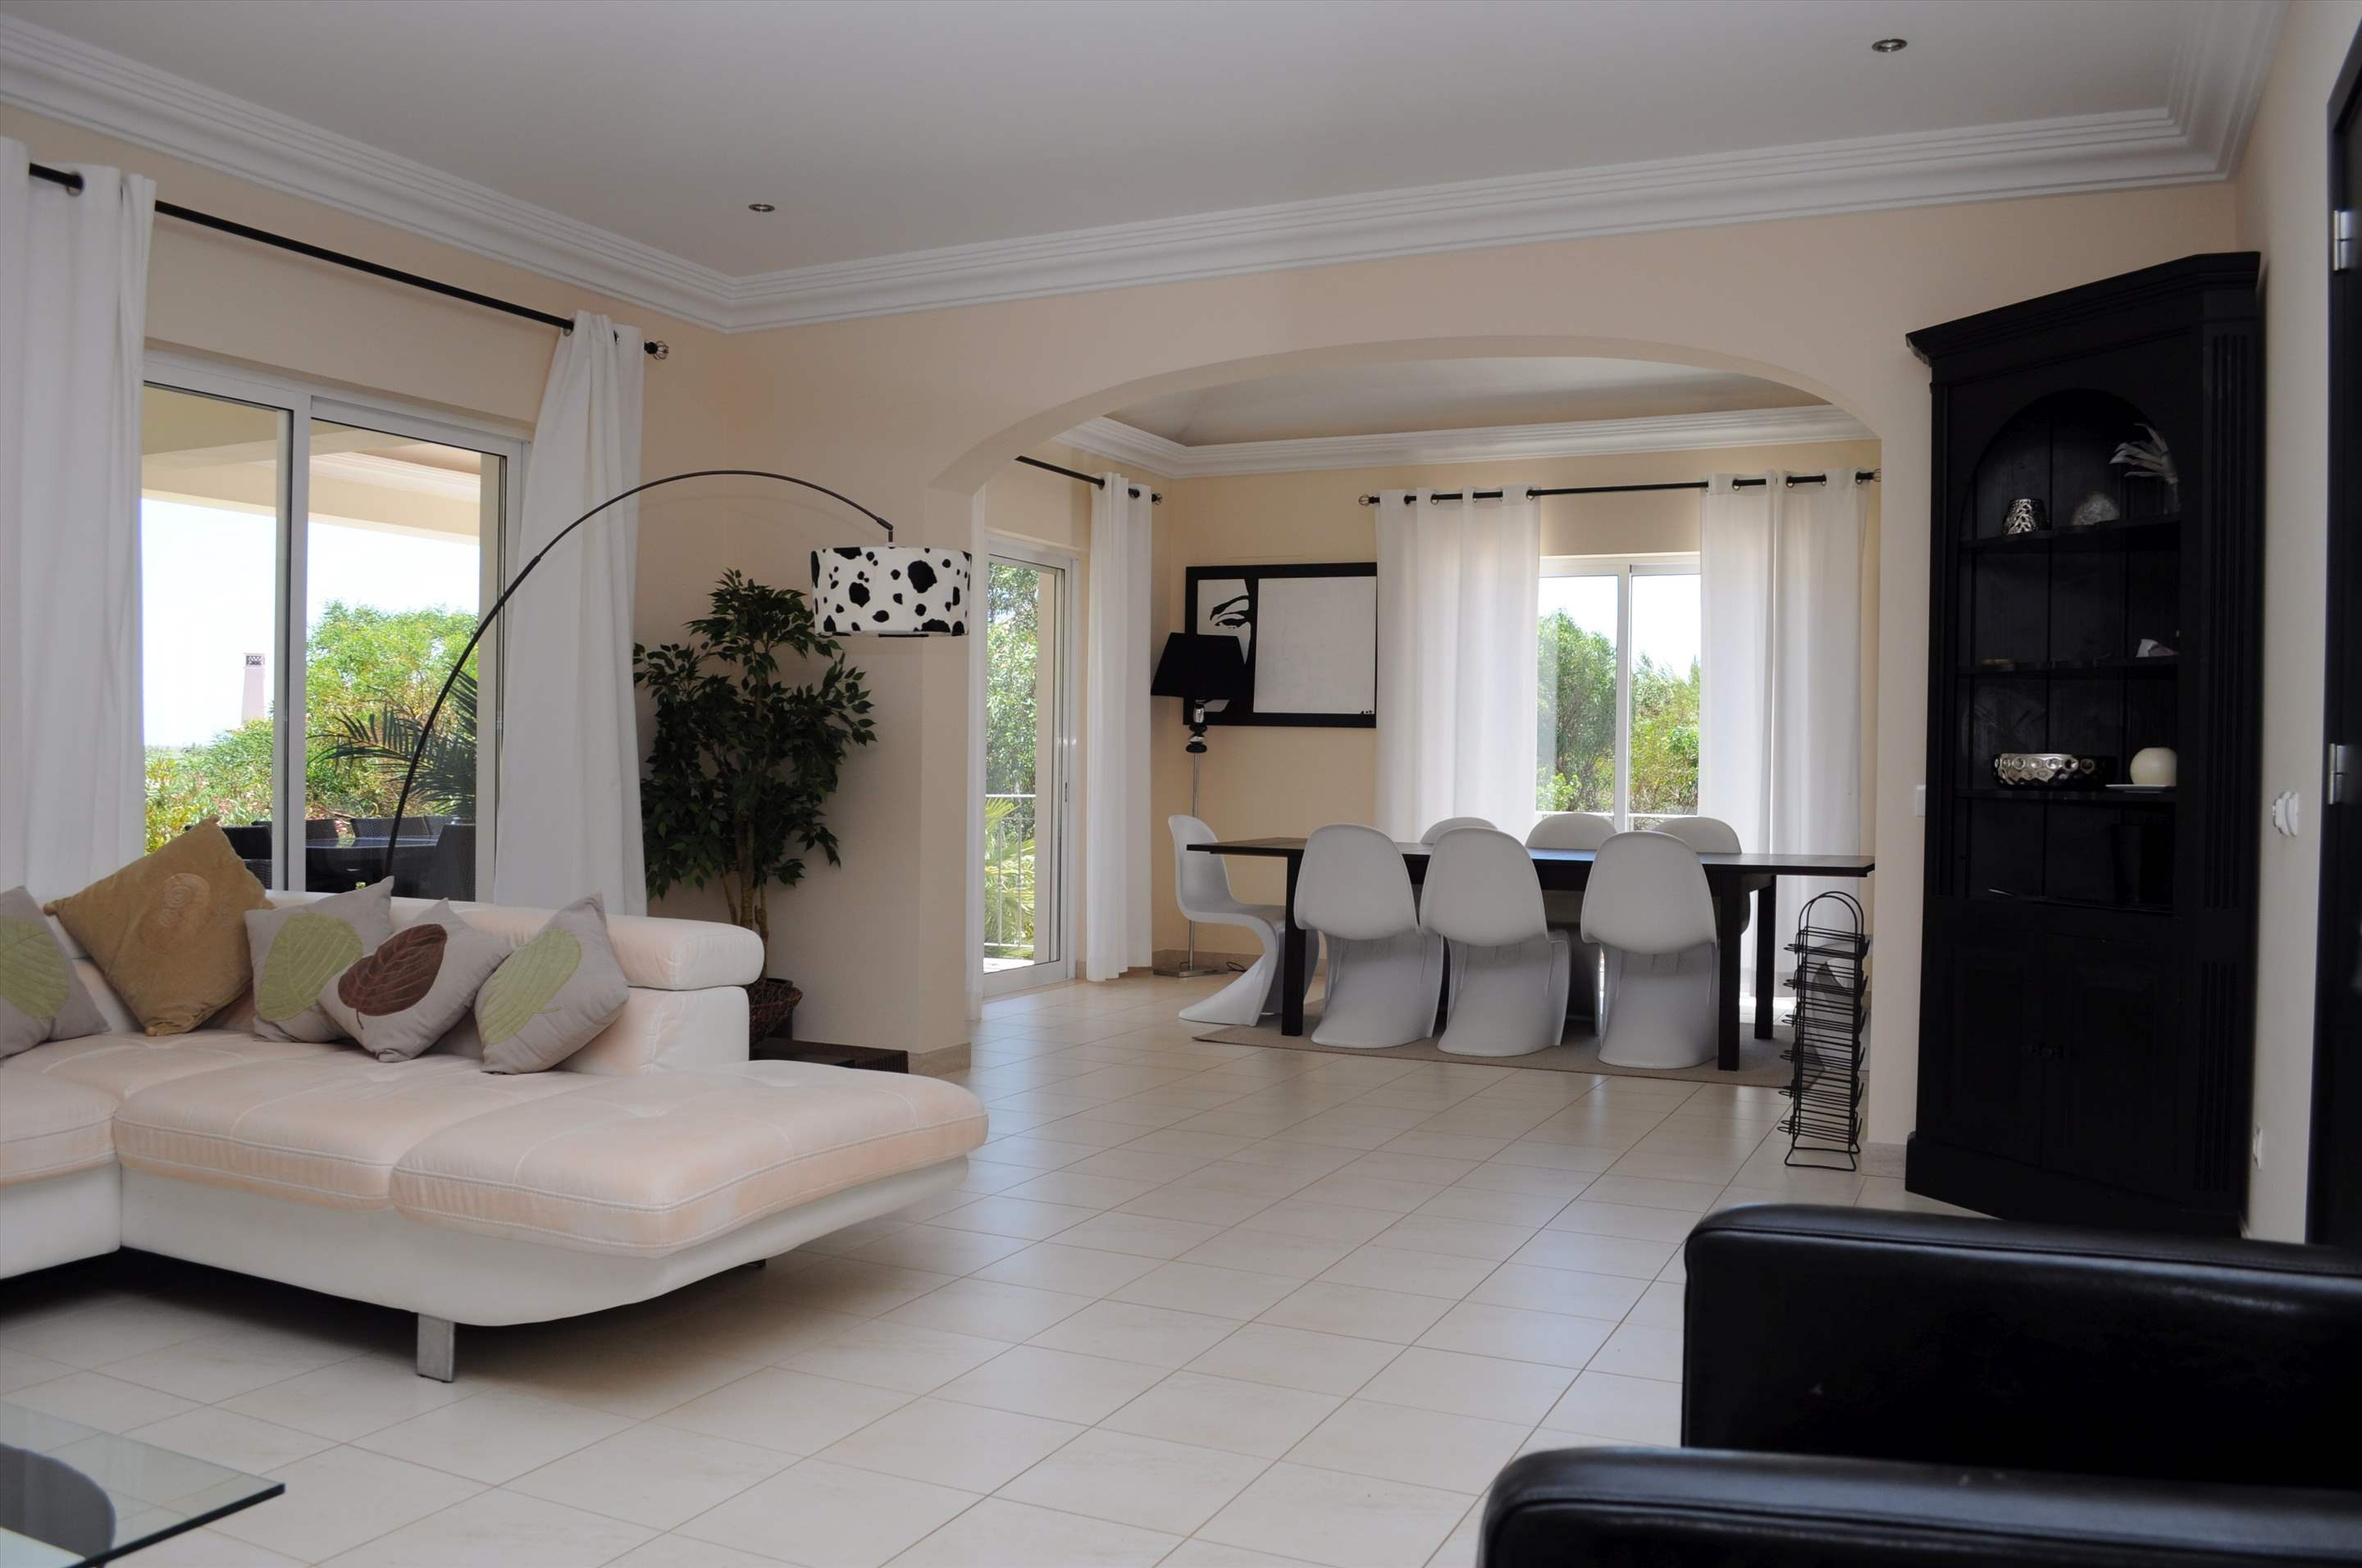 Martinhal Luxury Villa No.18, 5 bedroom villa in Martinhal Sagres, Algarve Photo #4